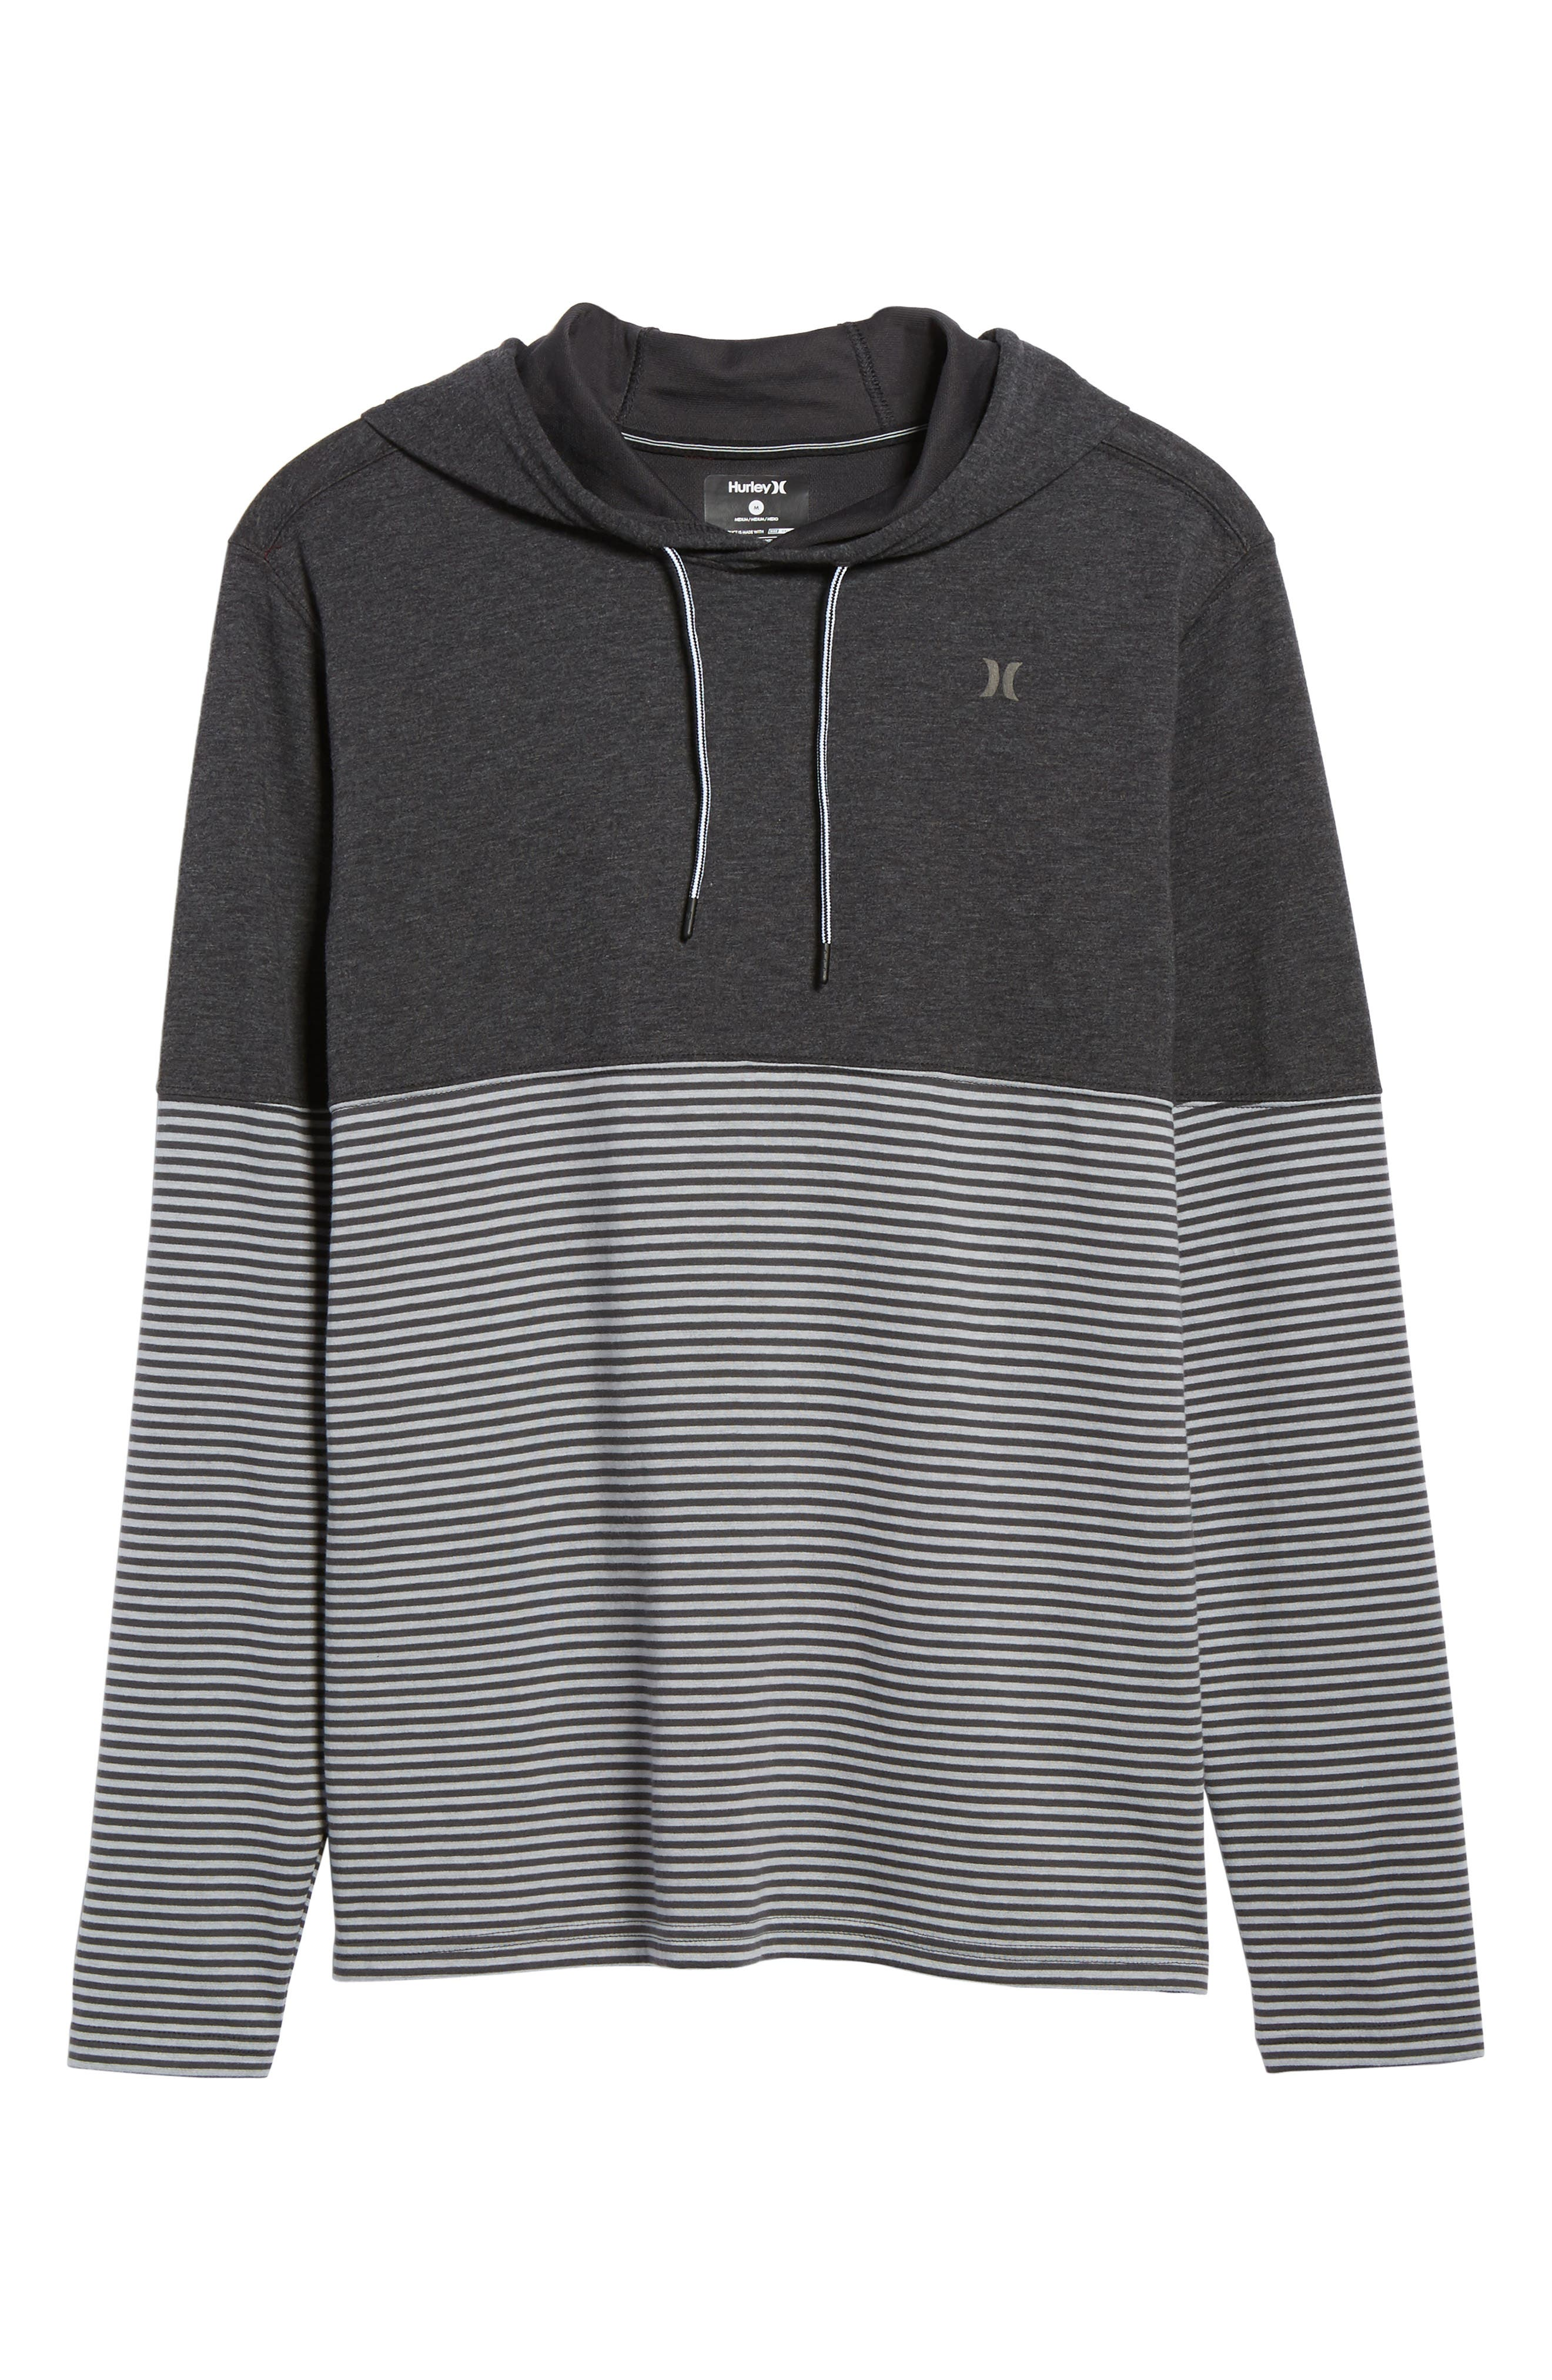 Recess Dry Hoodie,                             Main thumbnail 1, color,                             Black Heather